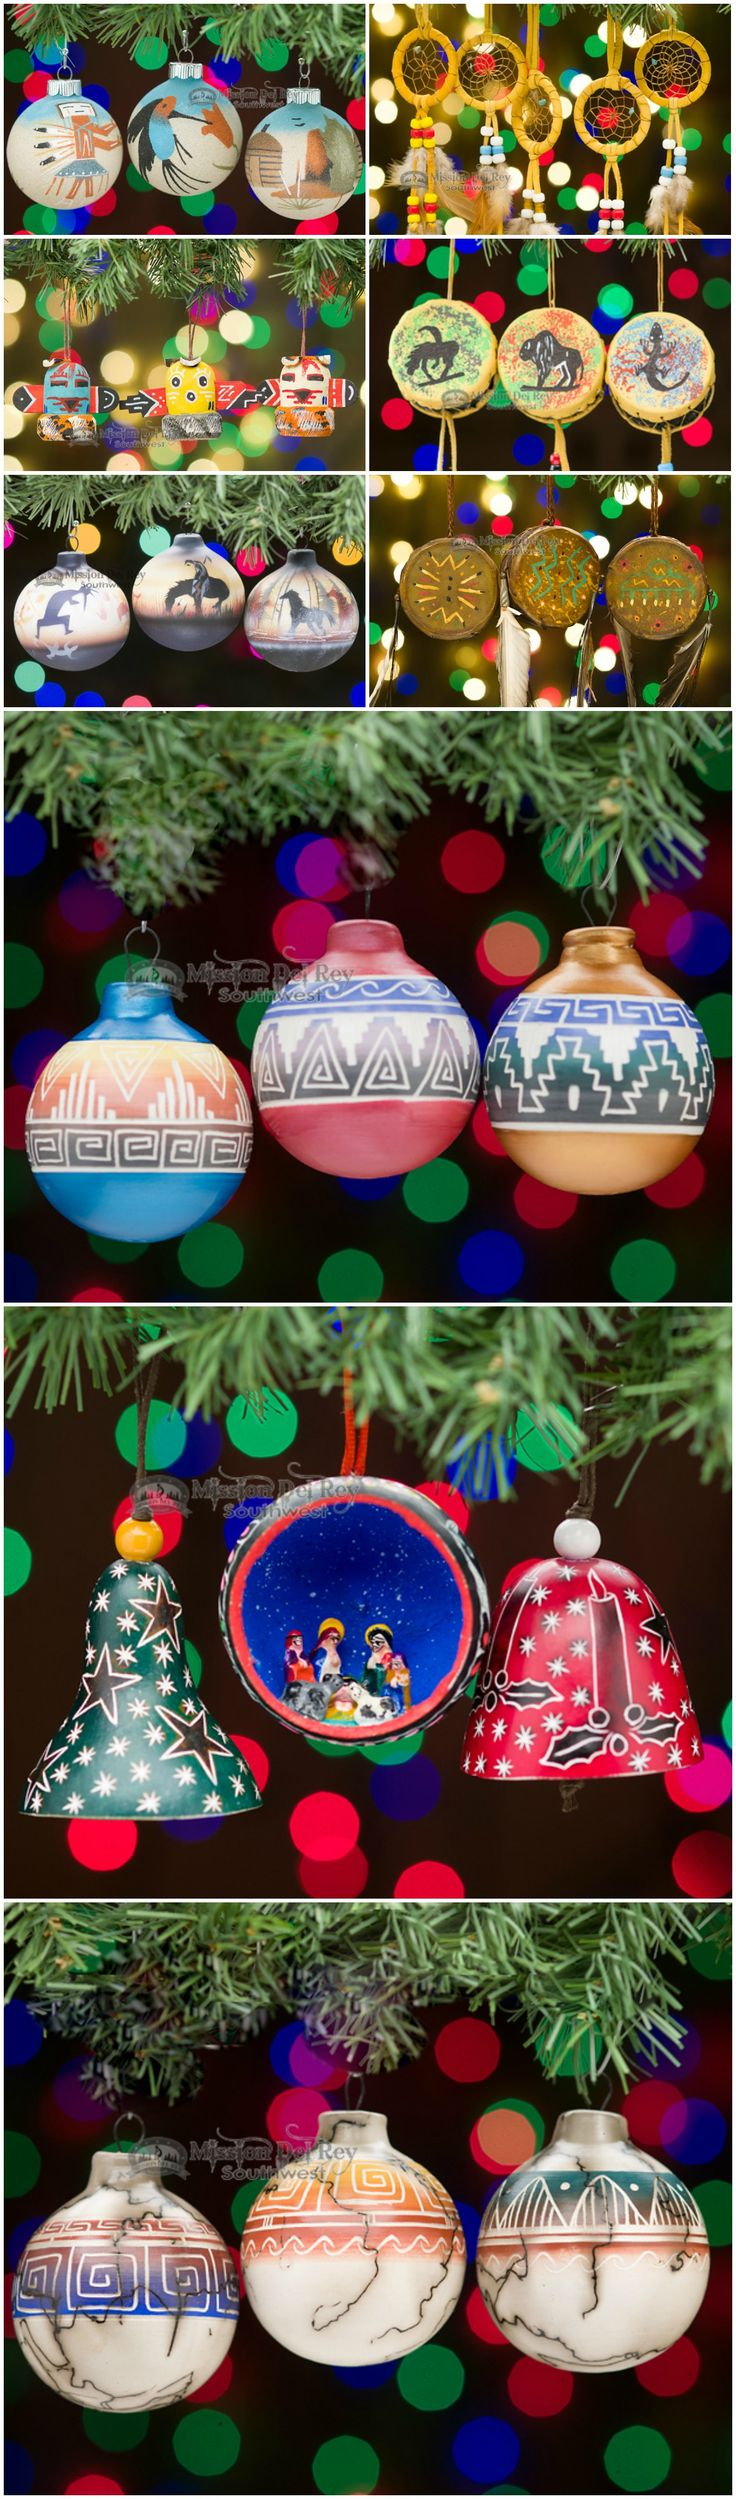 Native american ornaments - Our Beautiful Southwestern Christmas Ornaments Are The Perfect Decor Accent For A Southwestern Western Or